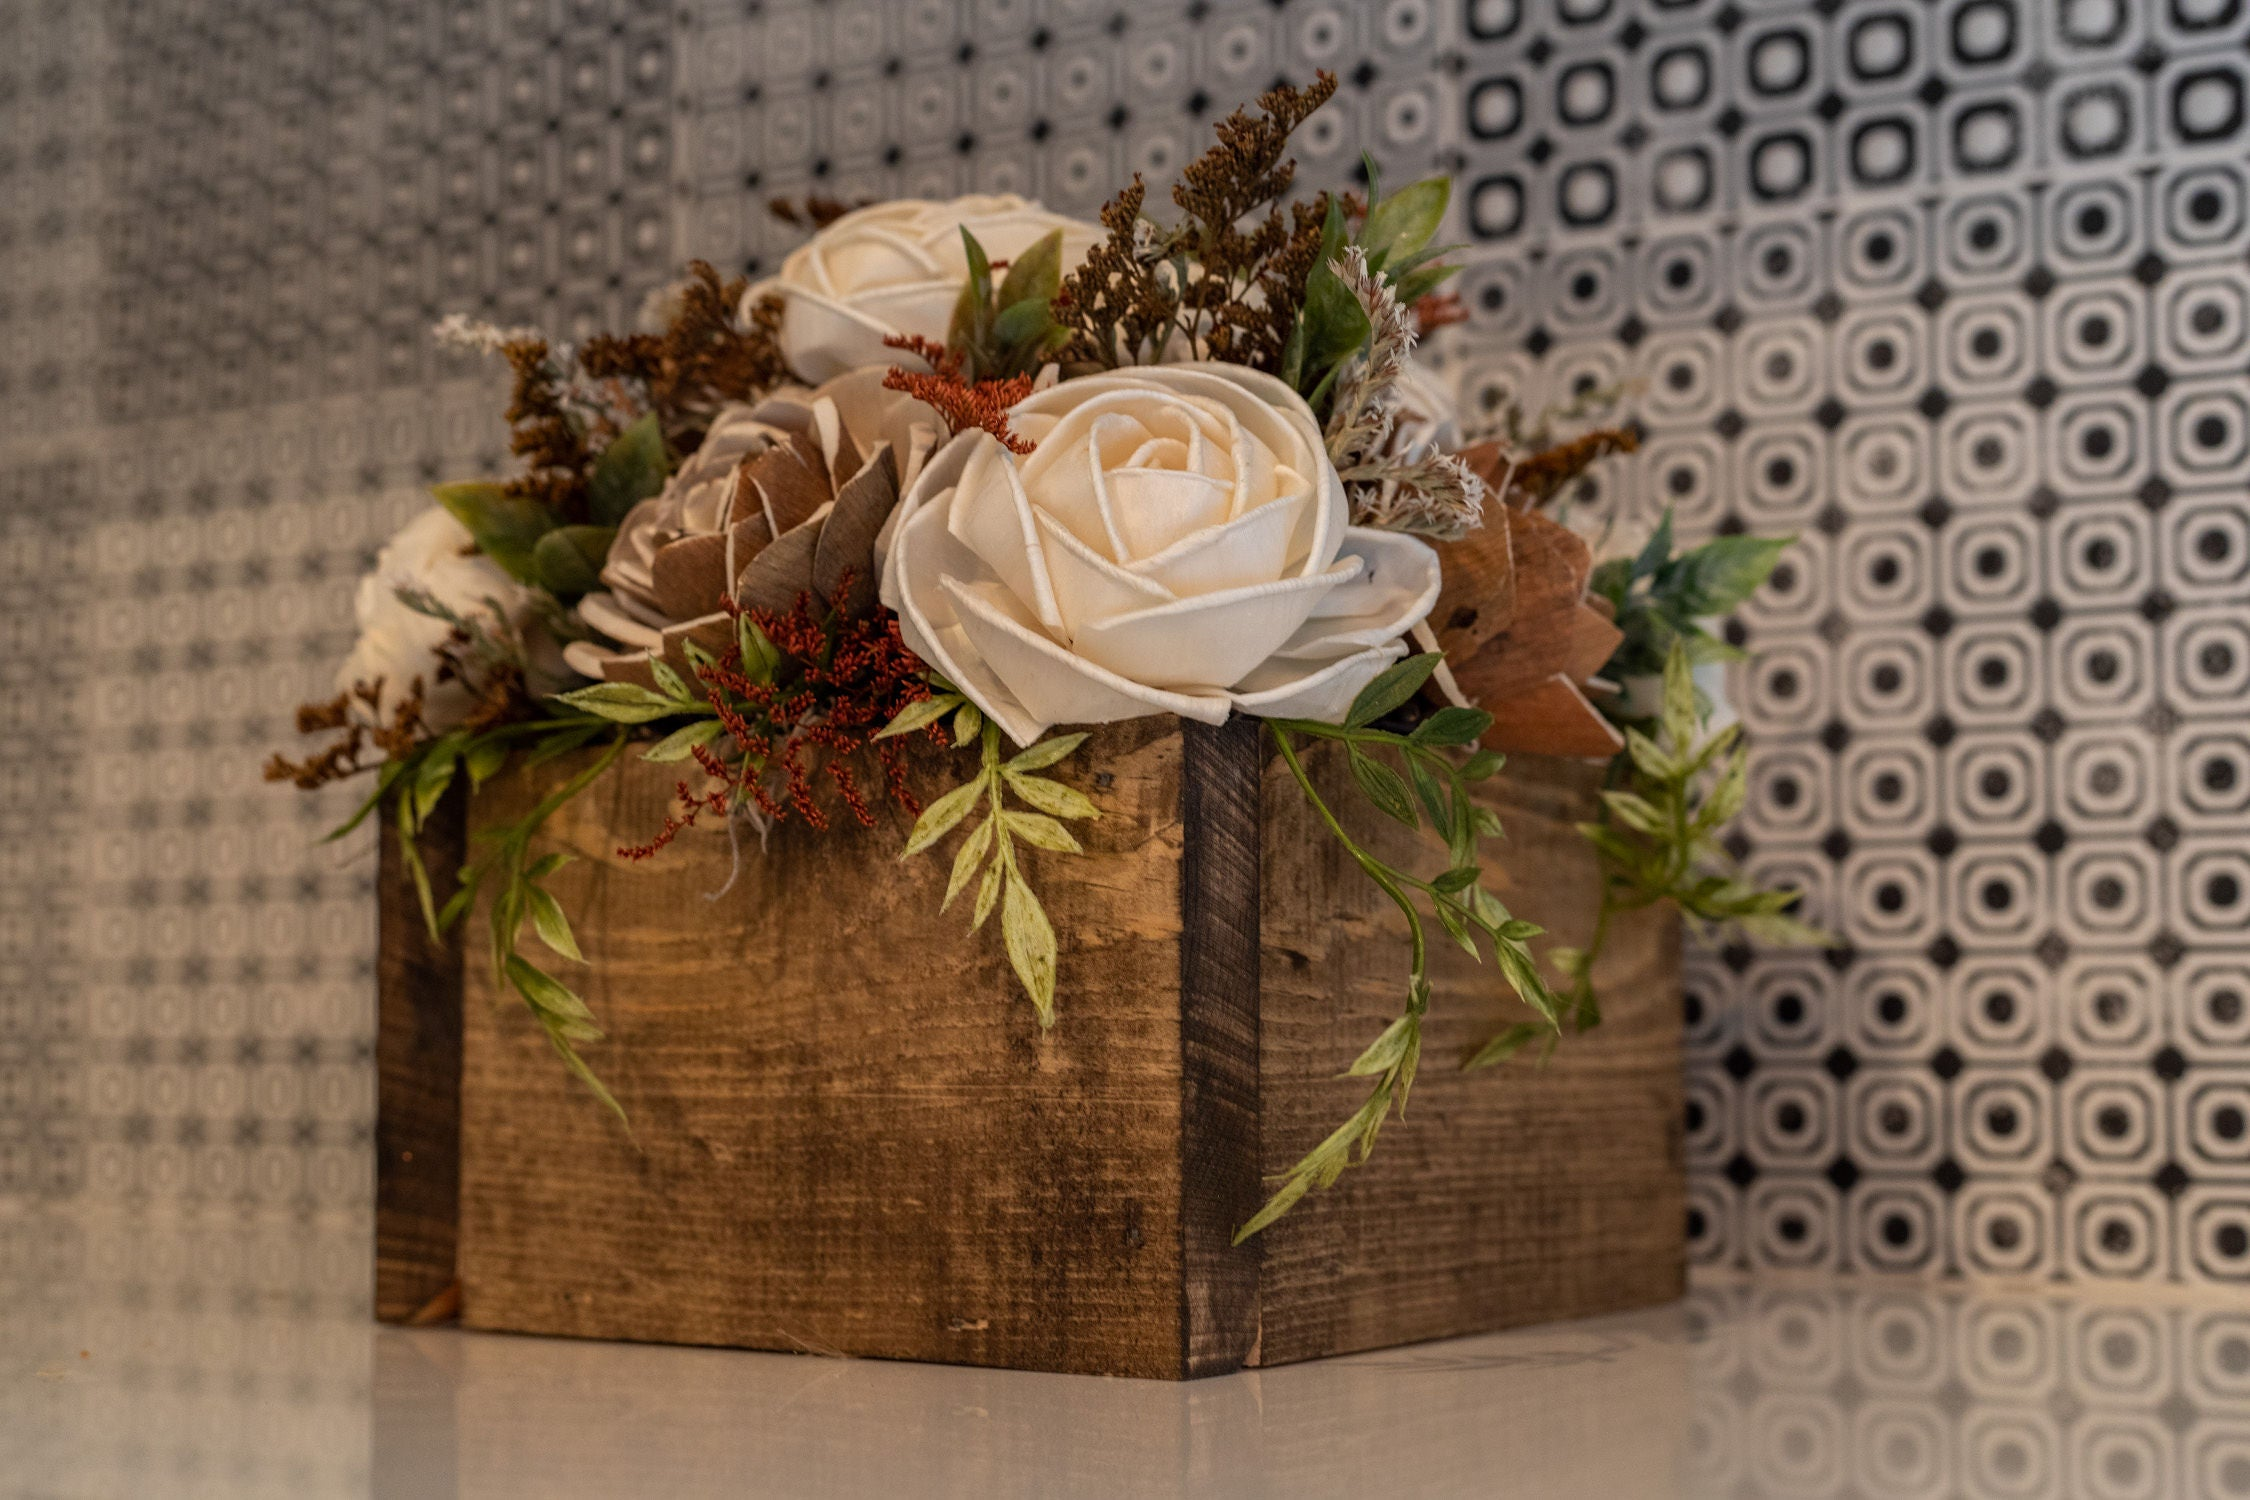 Wood Flower Arrangement in a Wood Box